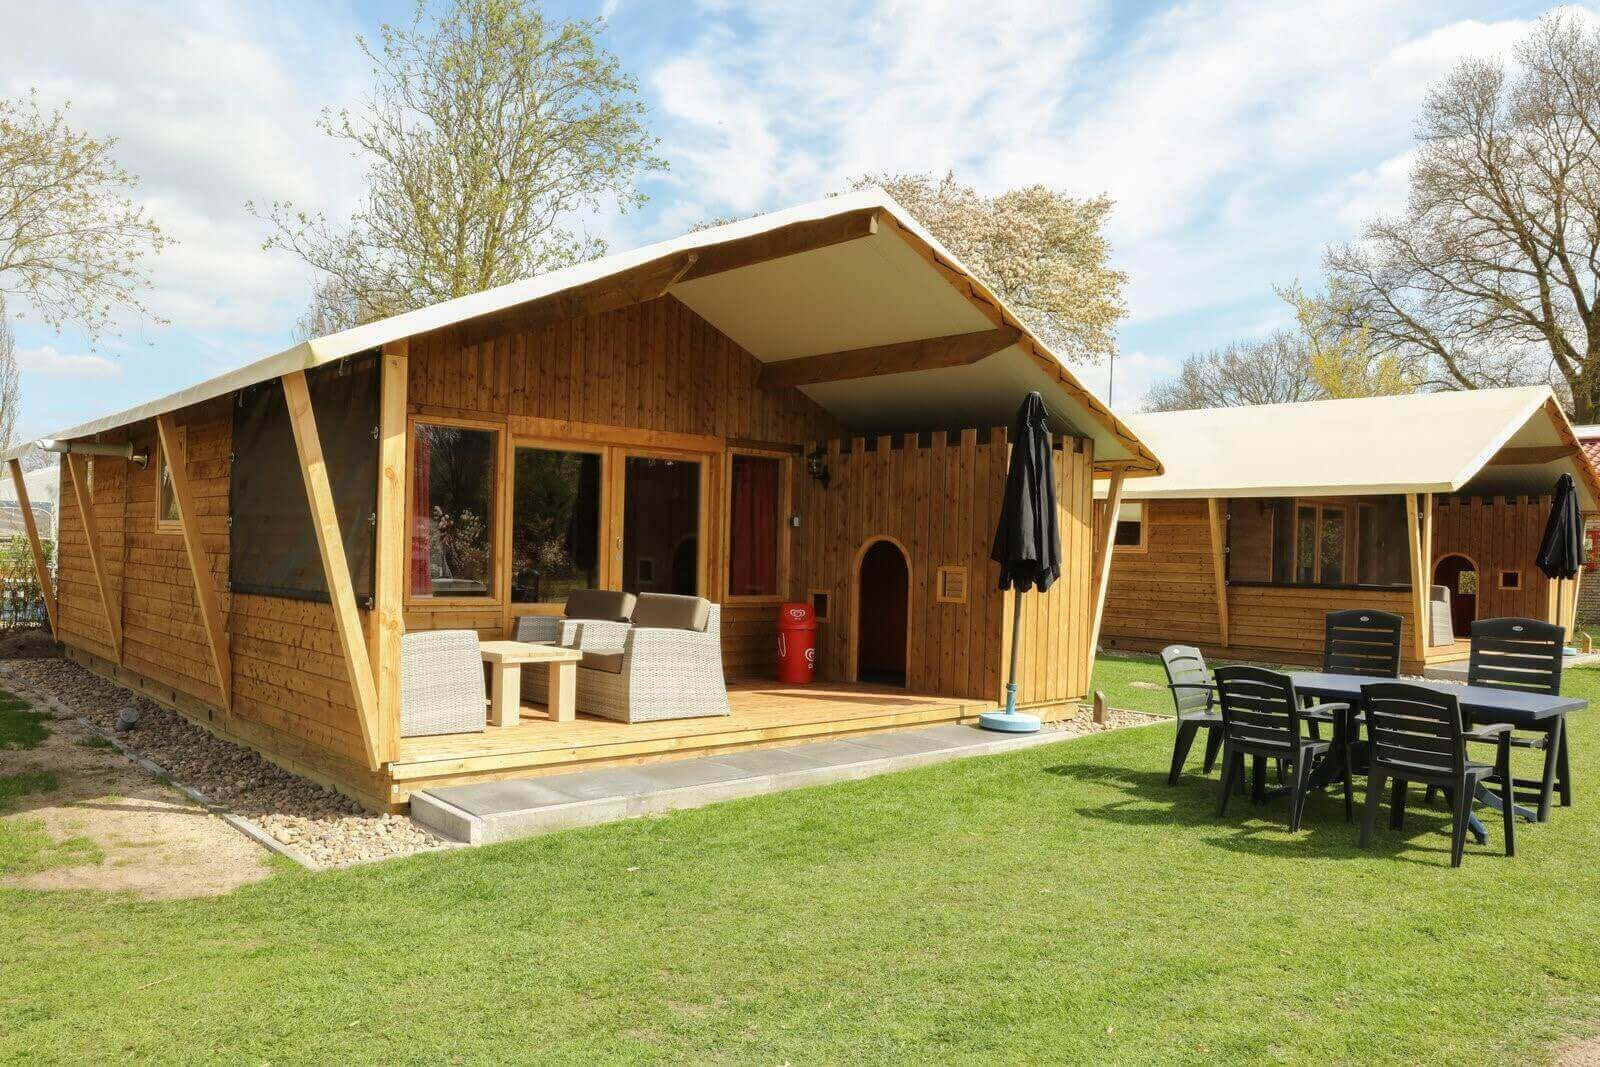 Sprookjescamping Nederland glamping